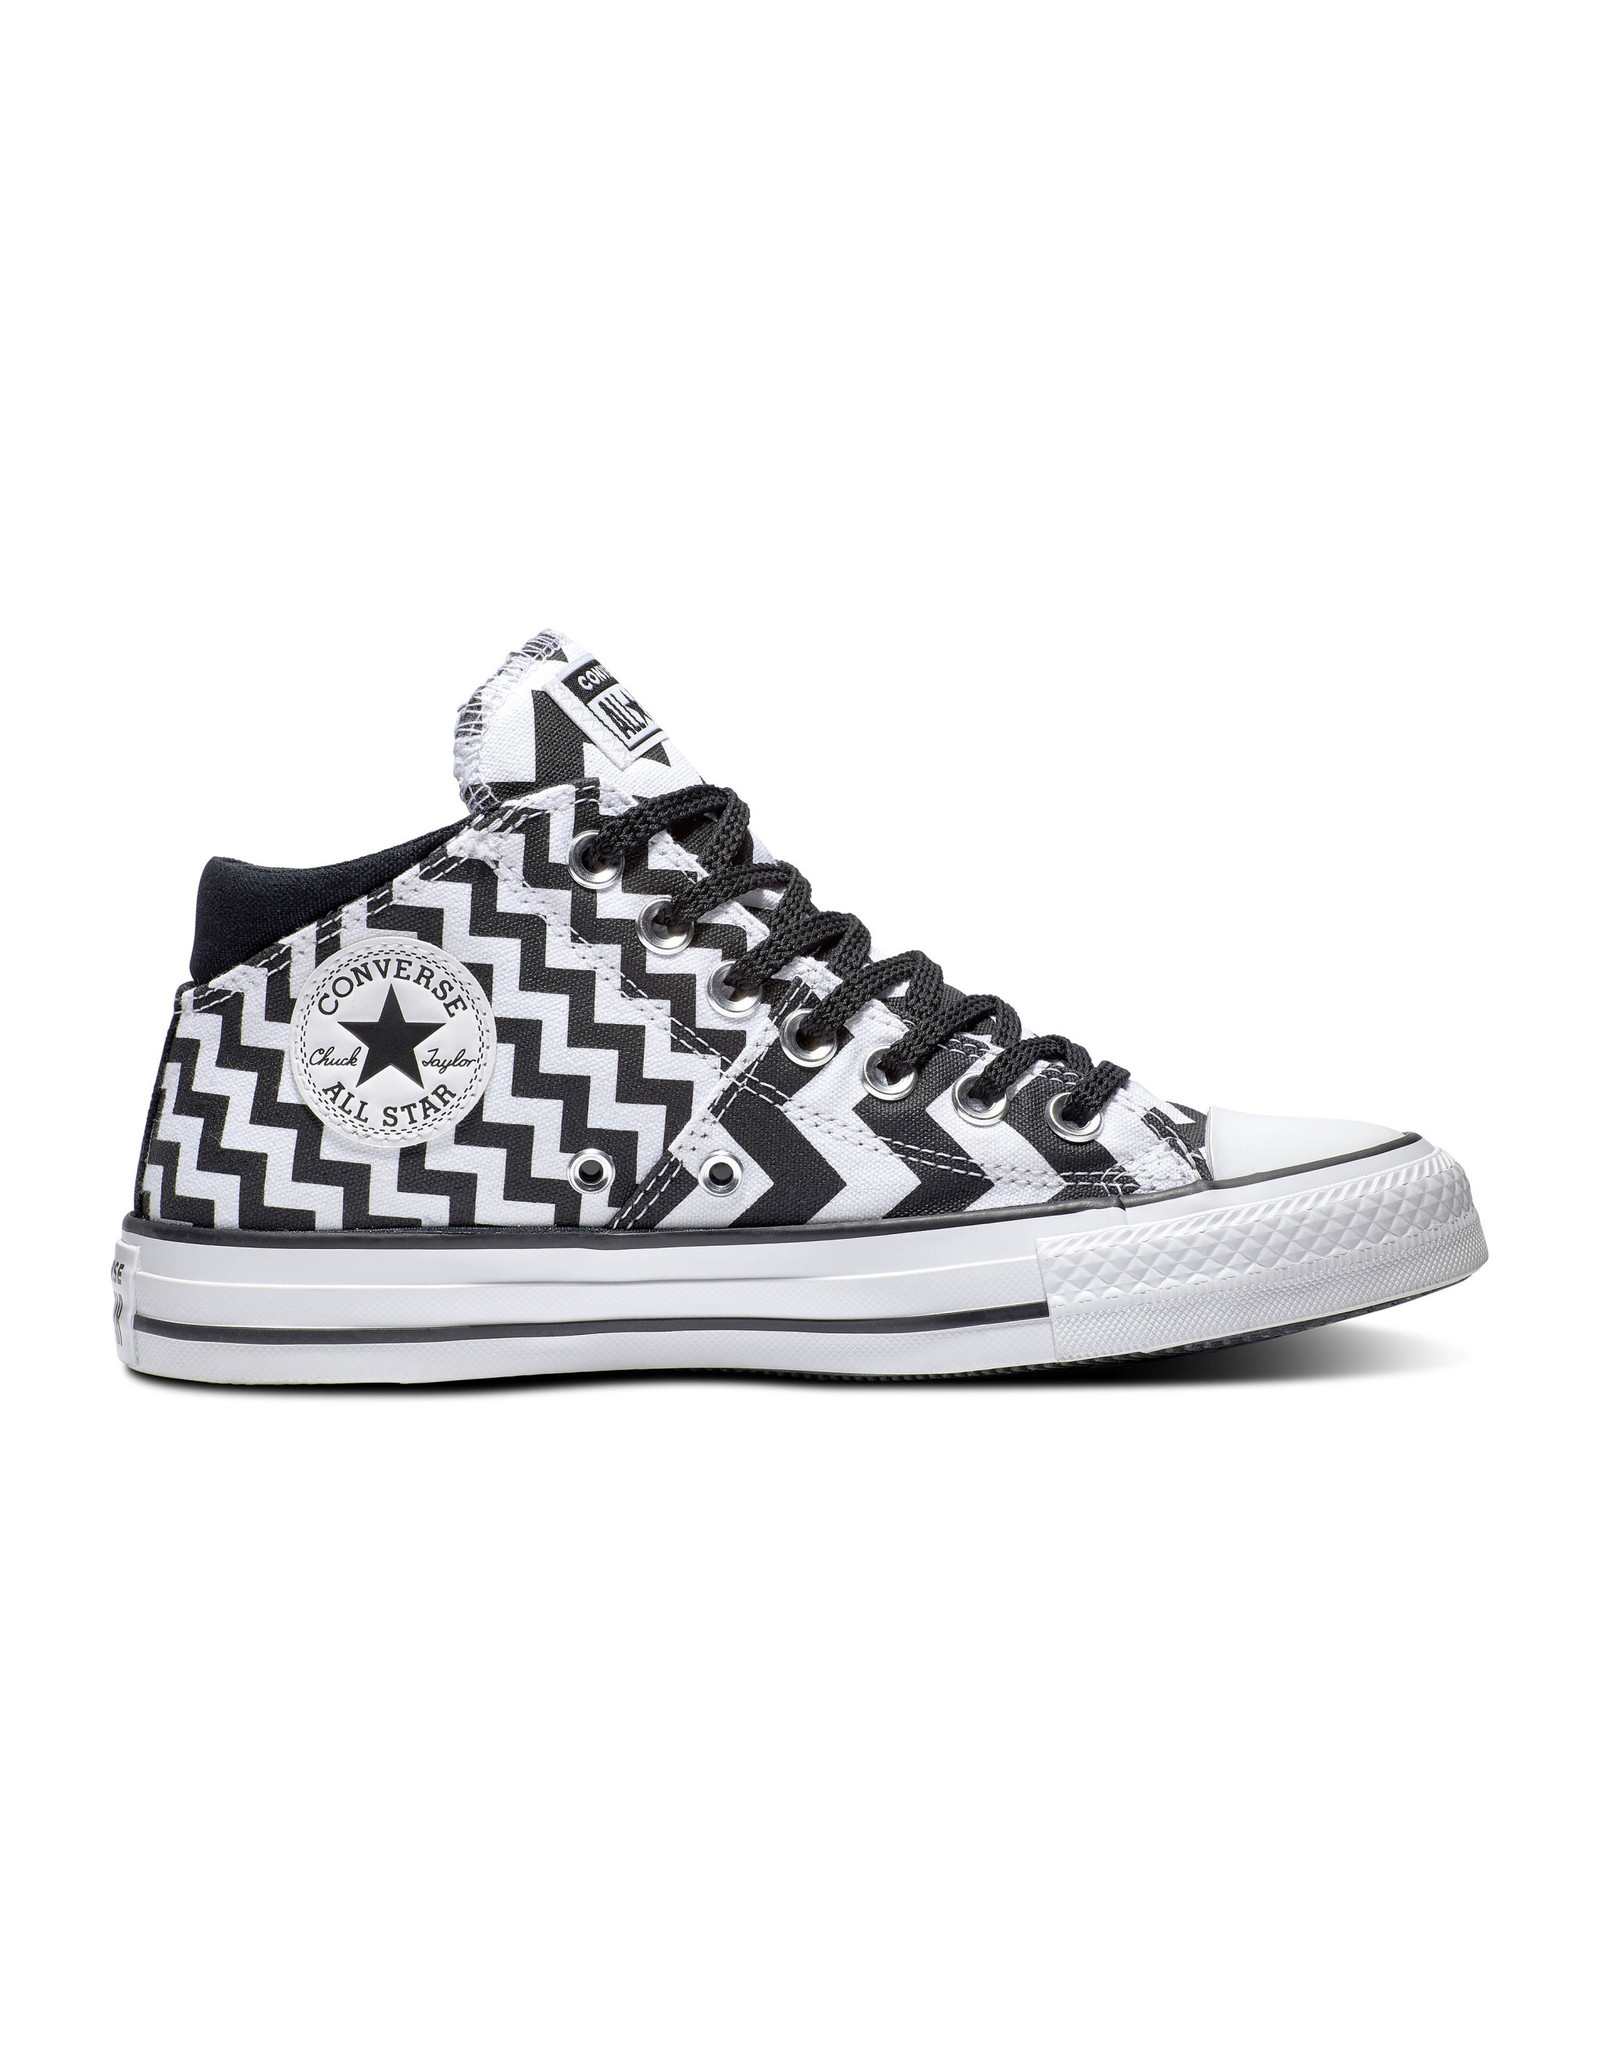 CONVERSE CHUCK TAYLOR ALL STAR MADISON MID WHITE/BLACK/WHITE C13MYM-565388C